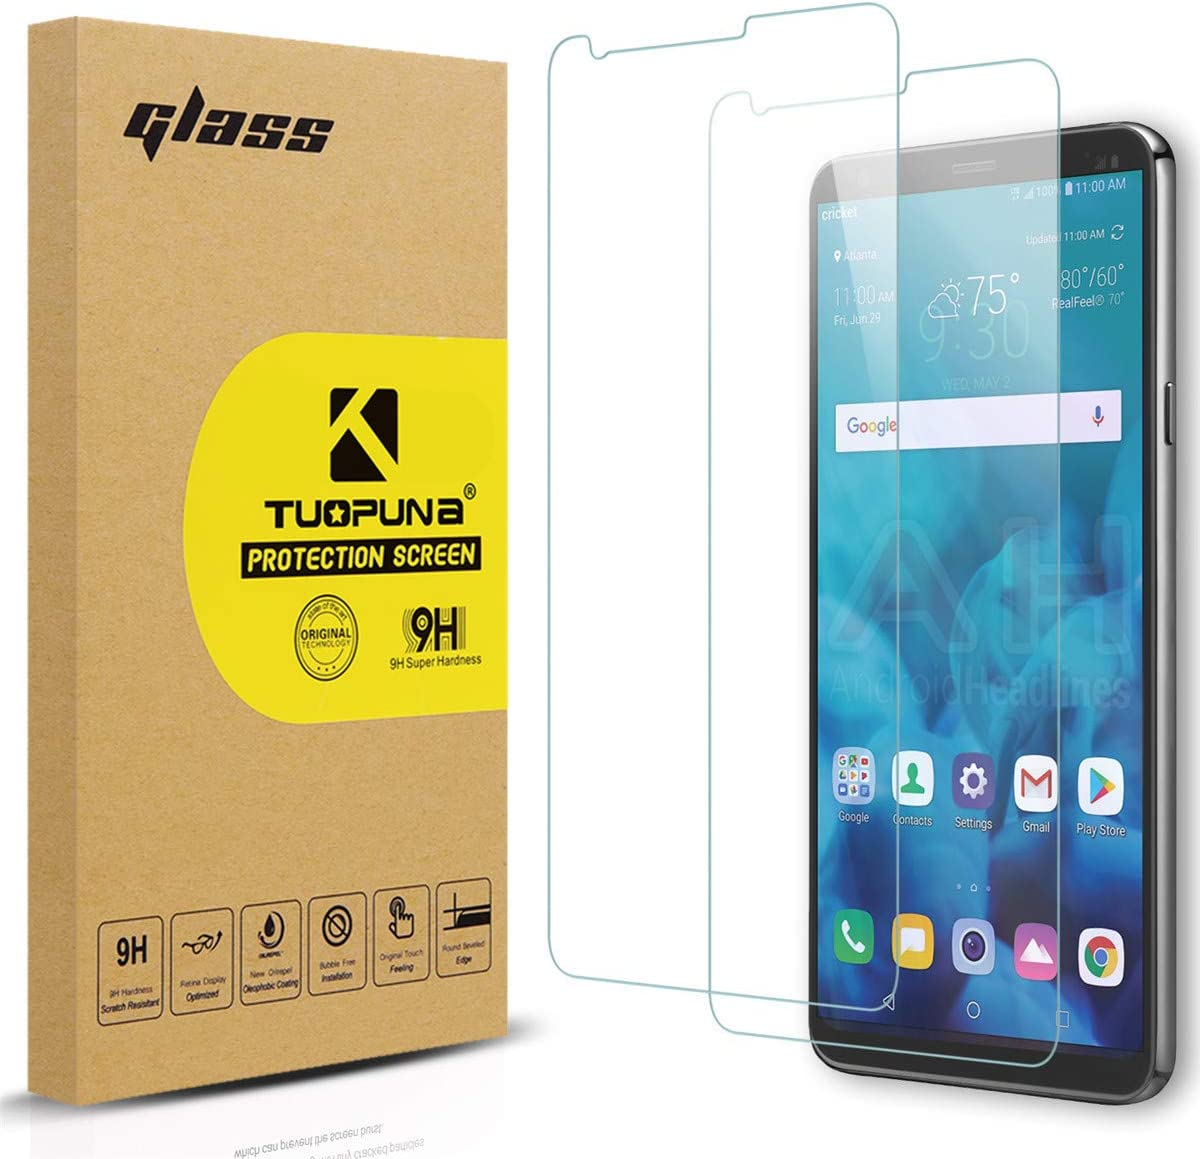 [2 Packs] LG Stylo 4 Screen Protector [Tempered Glass], Tuopuna 2.5D Arc Edges 9H Hardness HD Anti-Scratch Anti-Fingerprint AGC Glass Materials Screen Protectors For LG Stylo 4